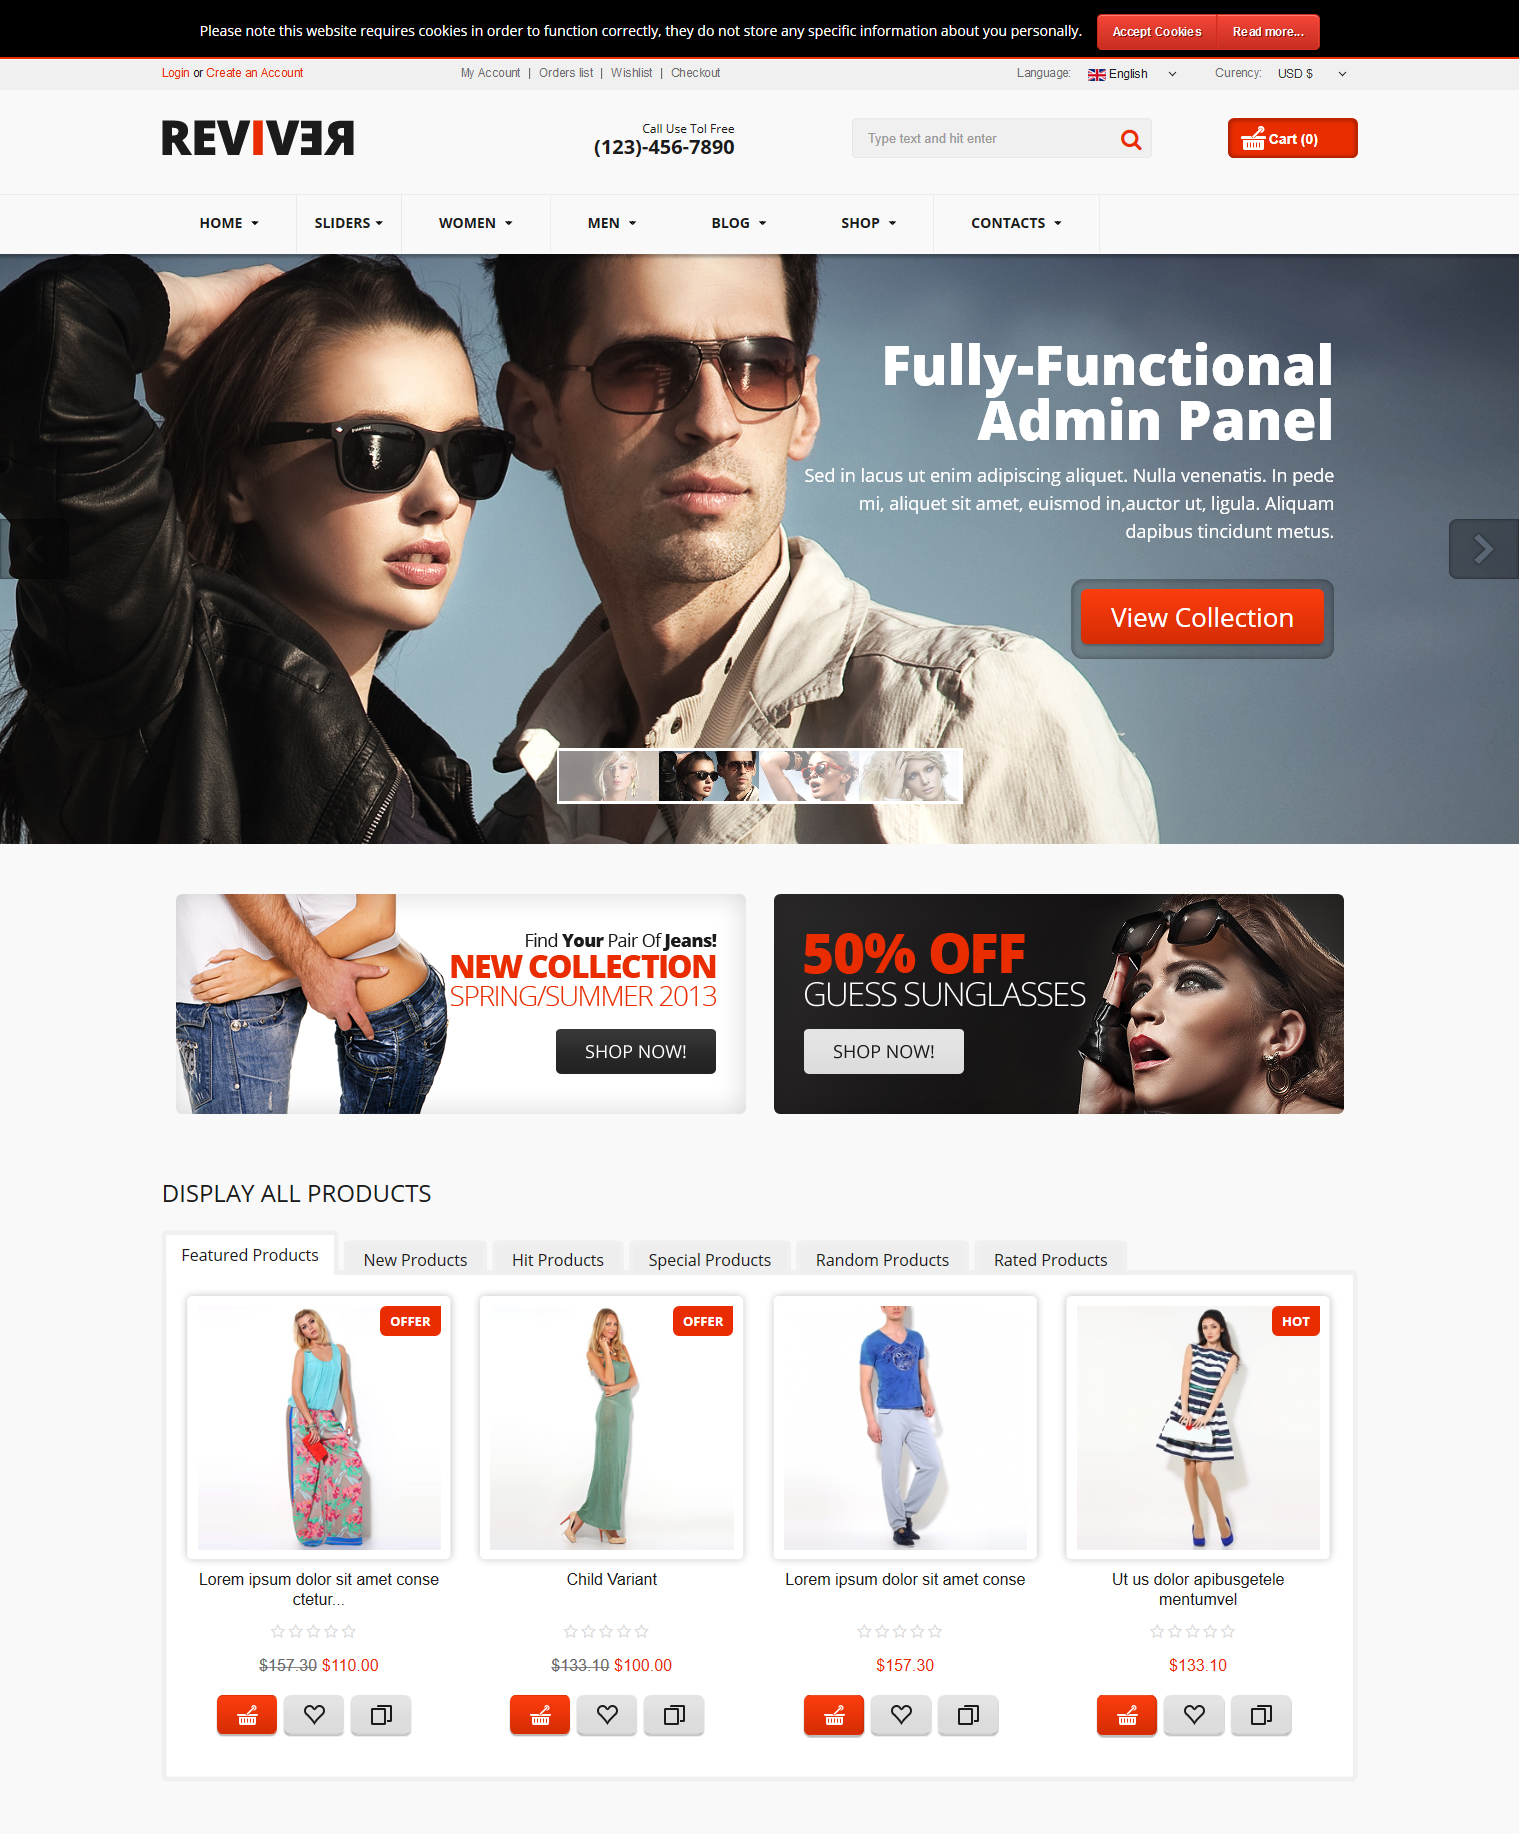 Best 10 Virtuemart Templates 2015 for Your eCommerce Site